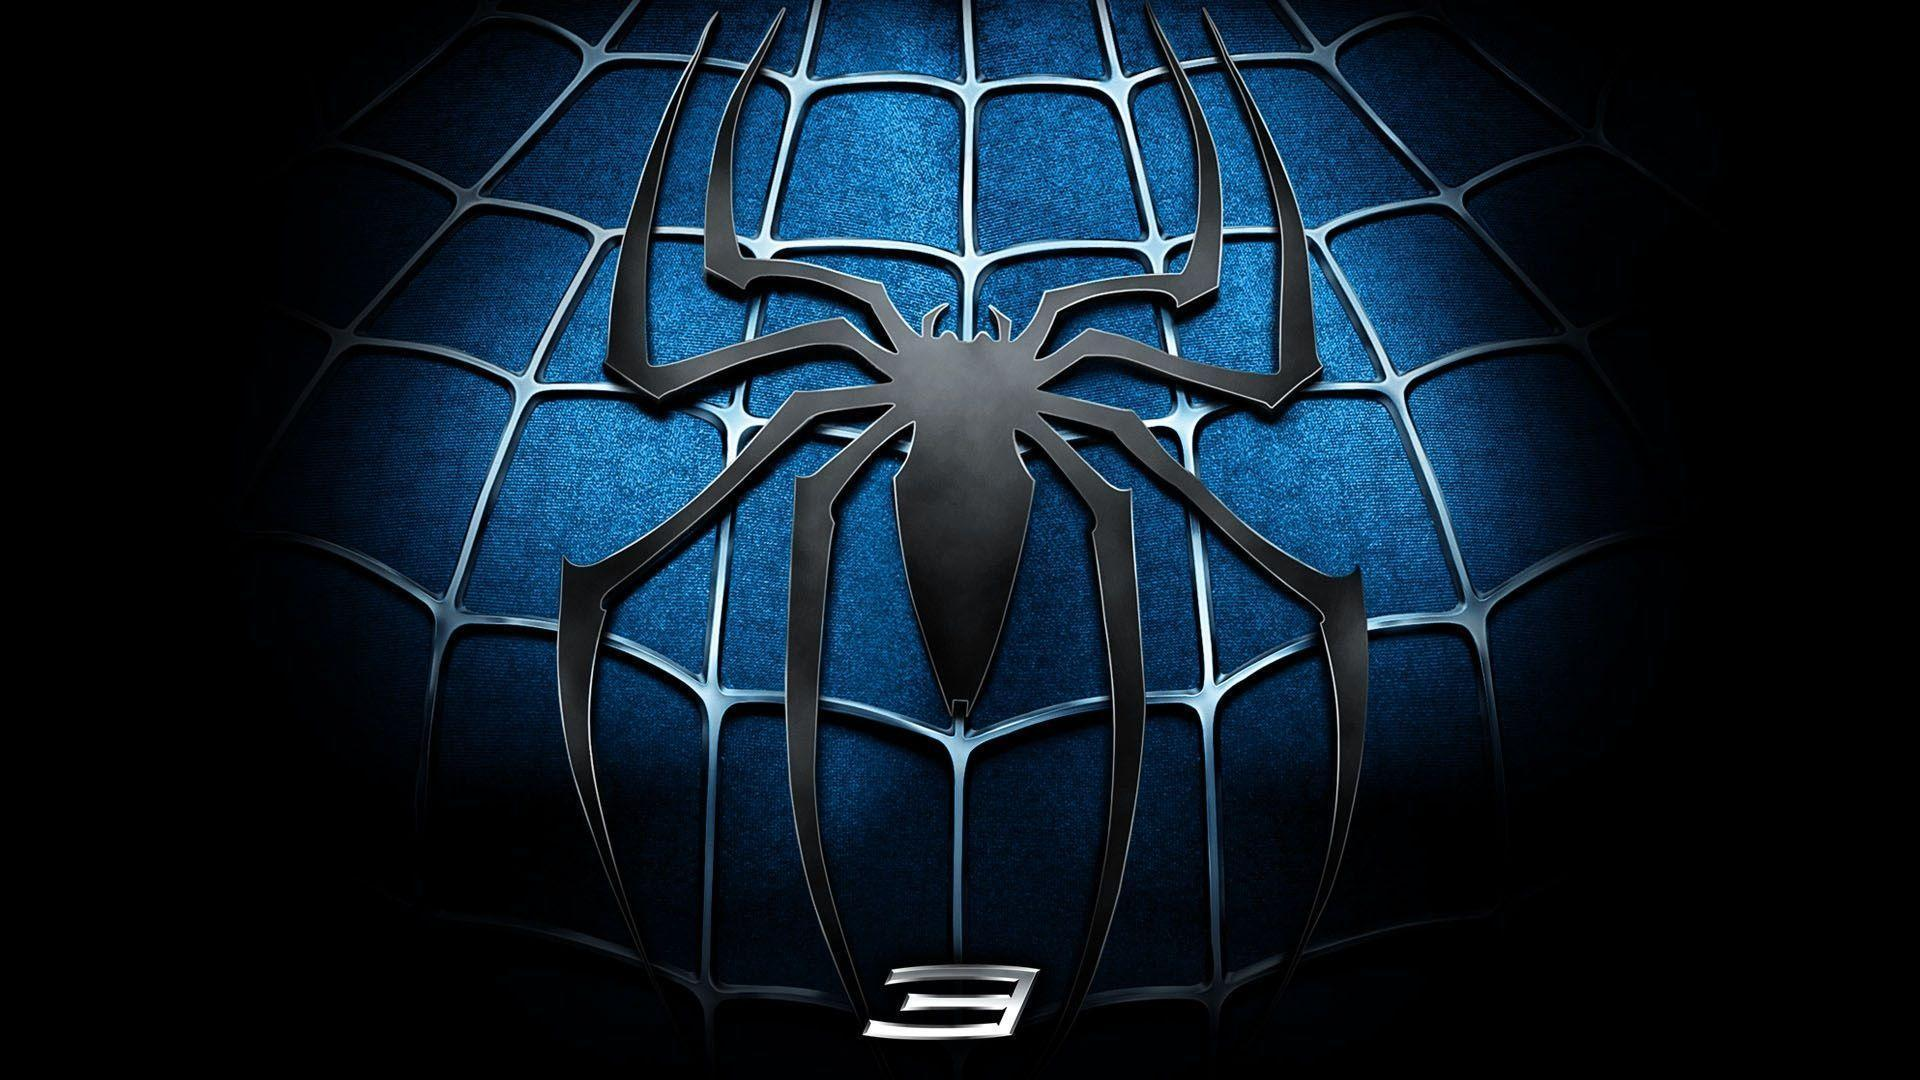 Spider Man Hd Wallpapers Download Wallpaper | HDMarvelWallpaper